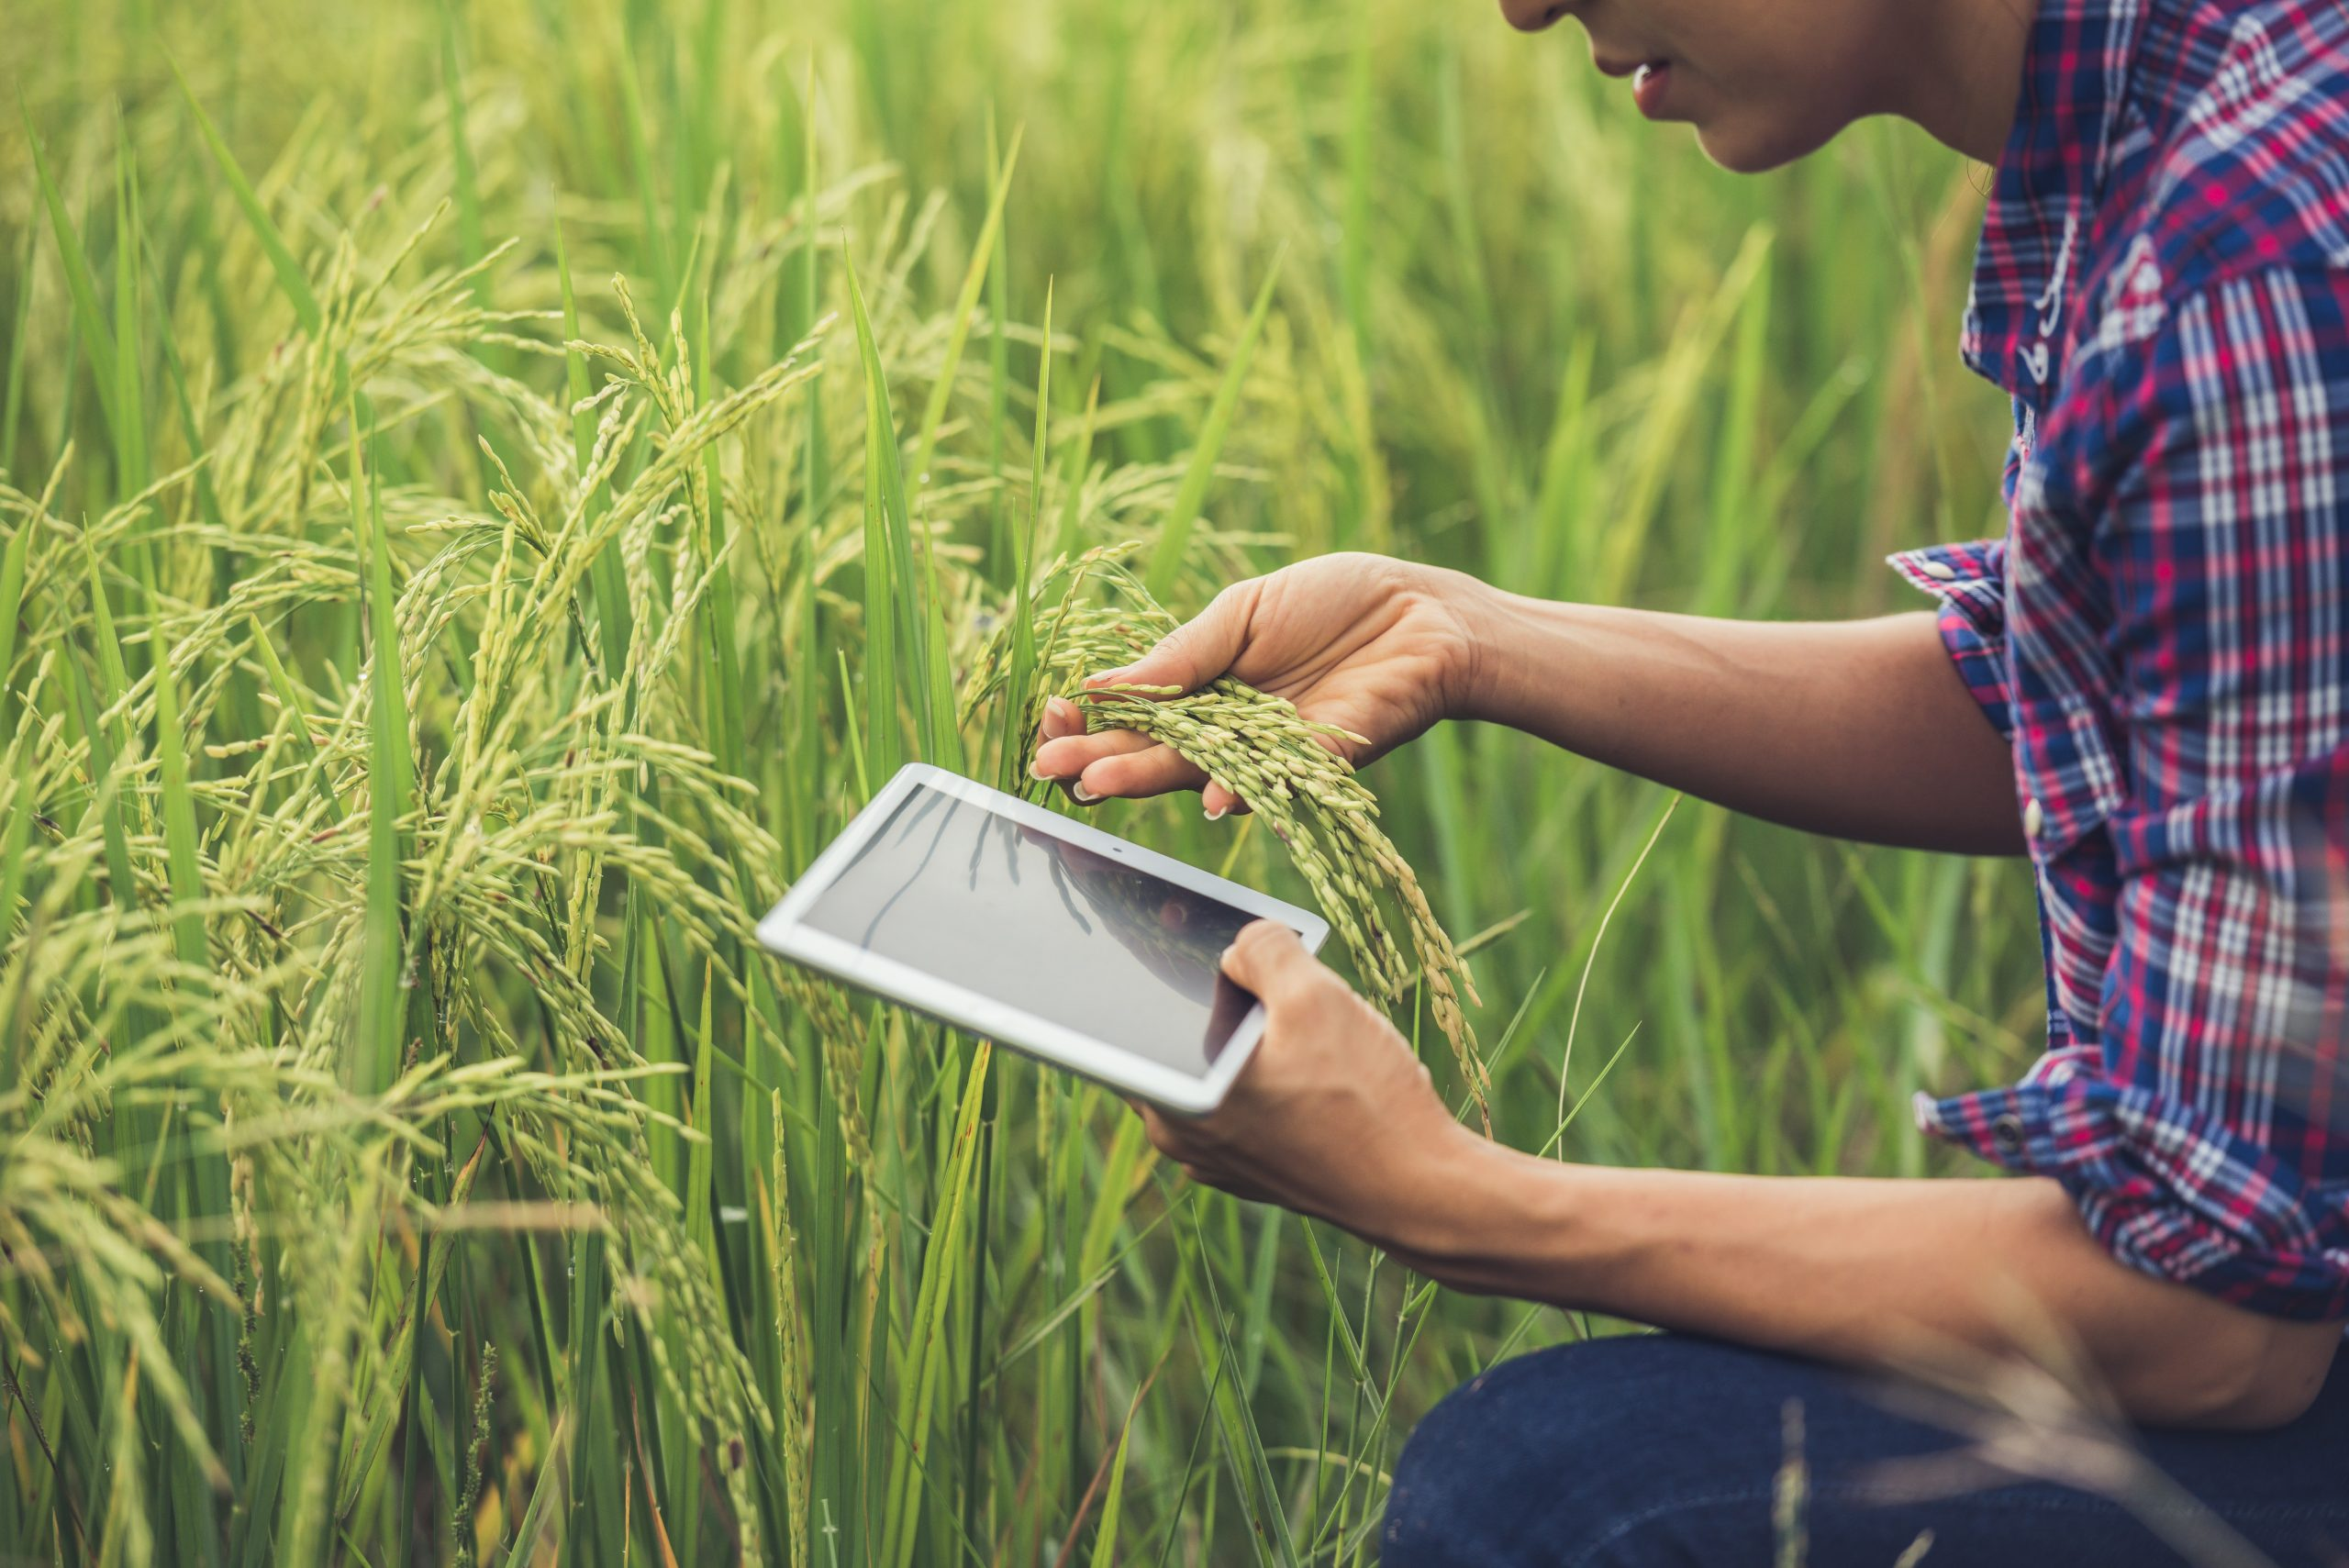 digital marketing for farming and agriculture businesses